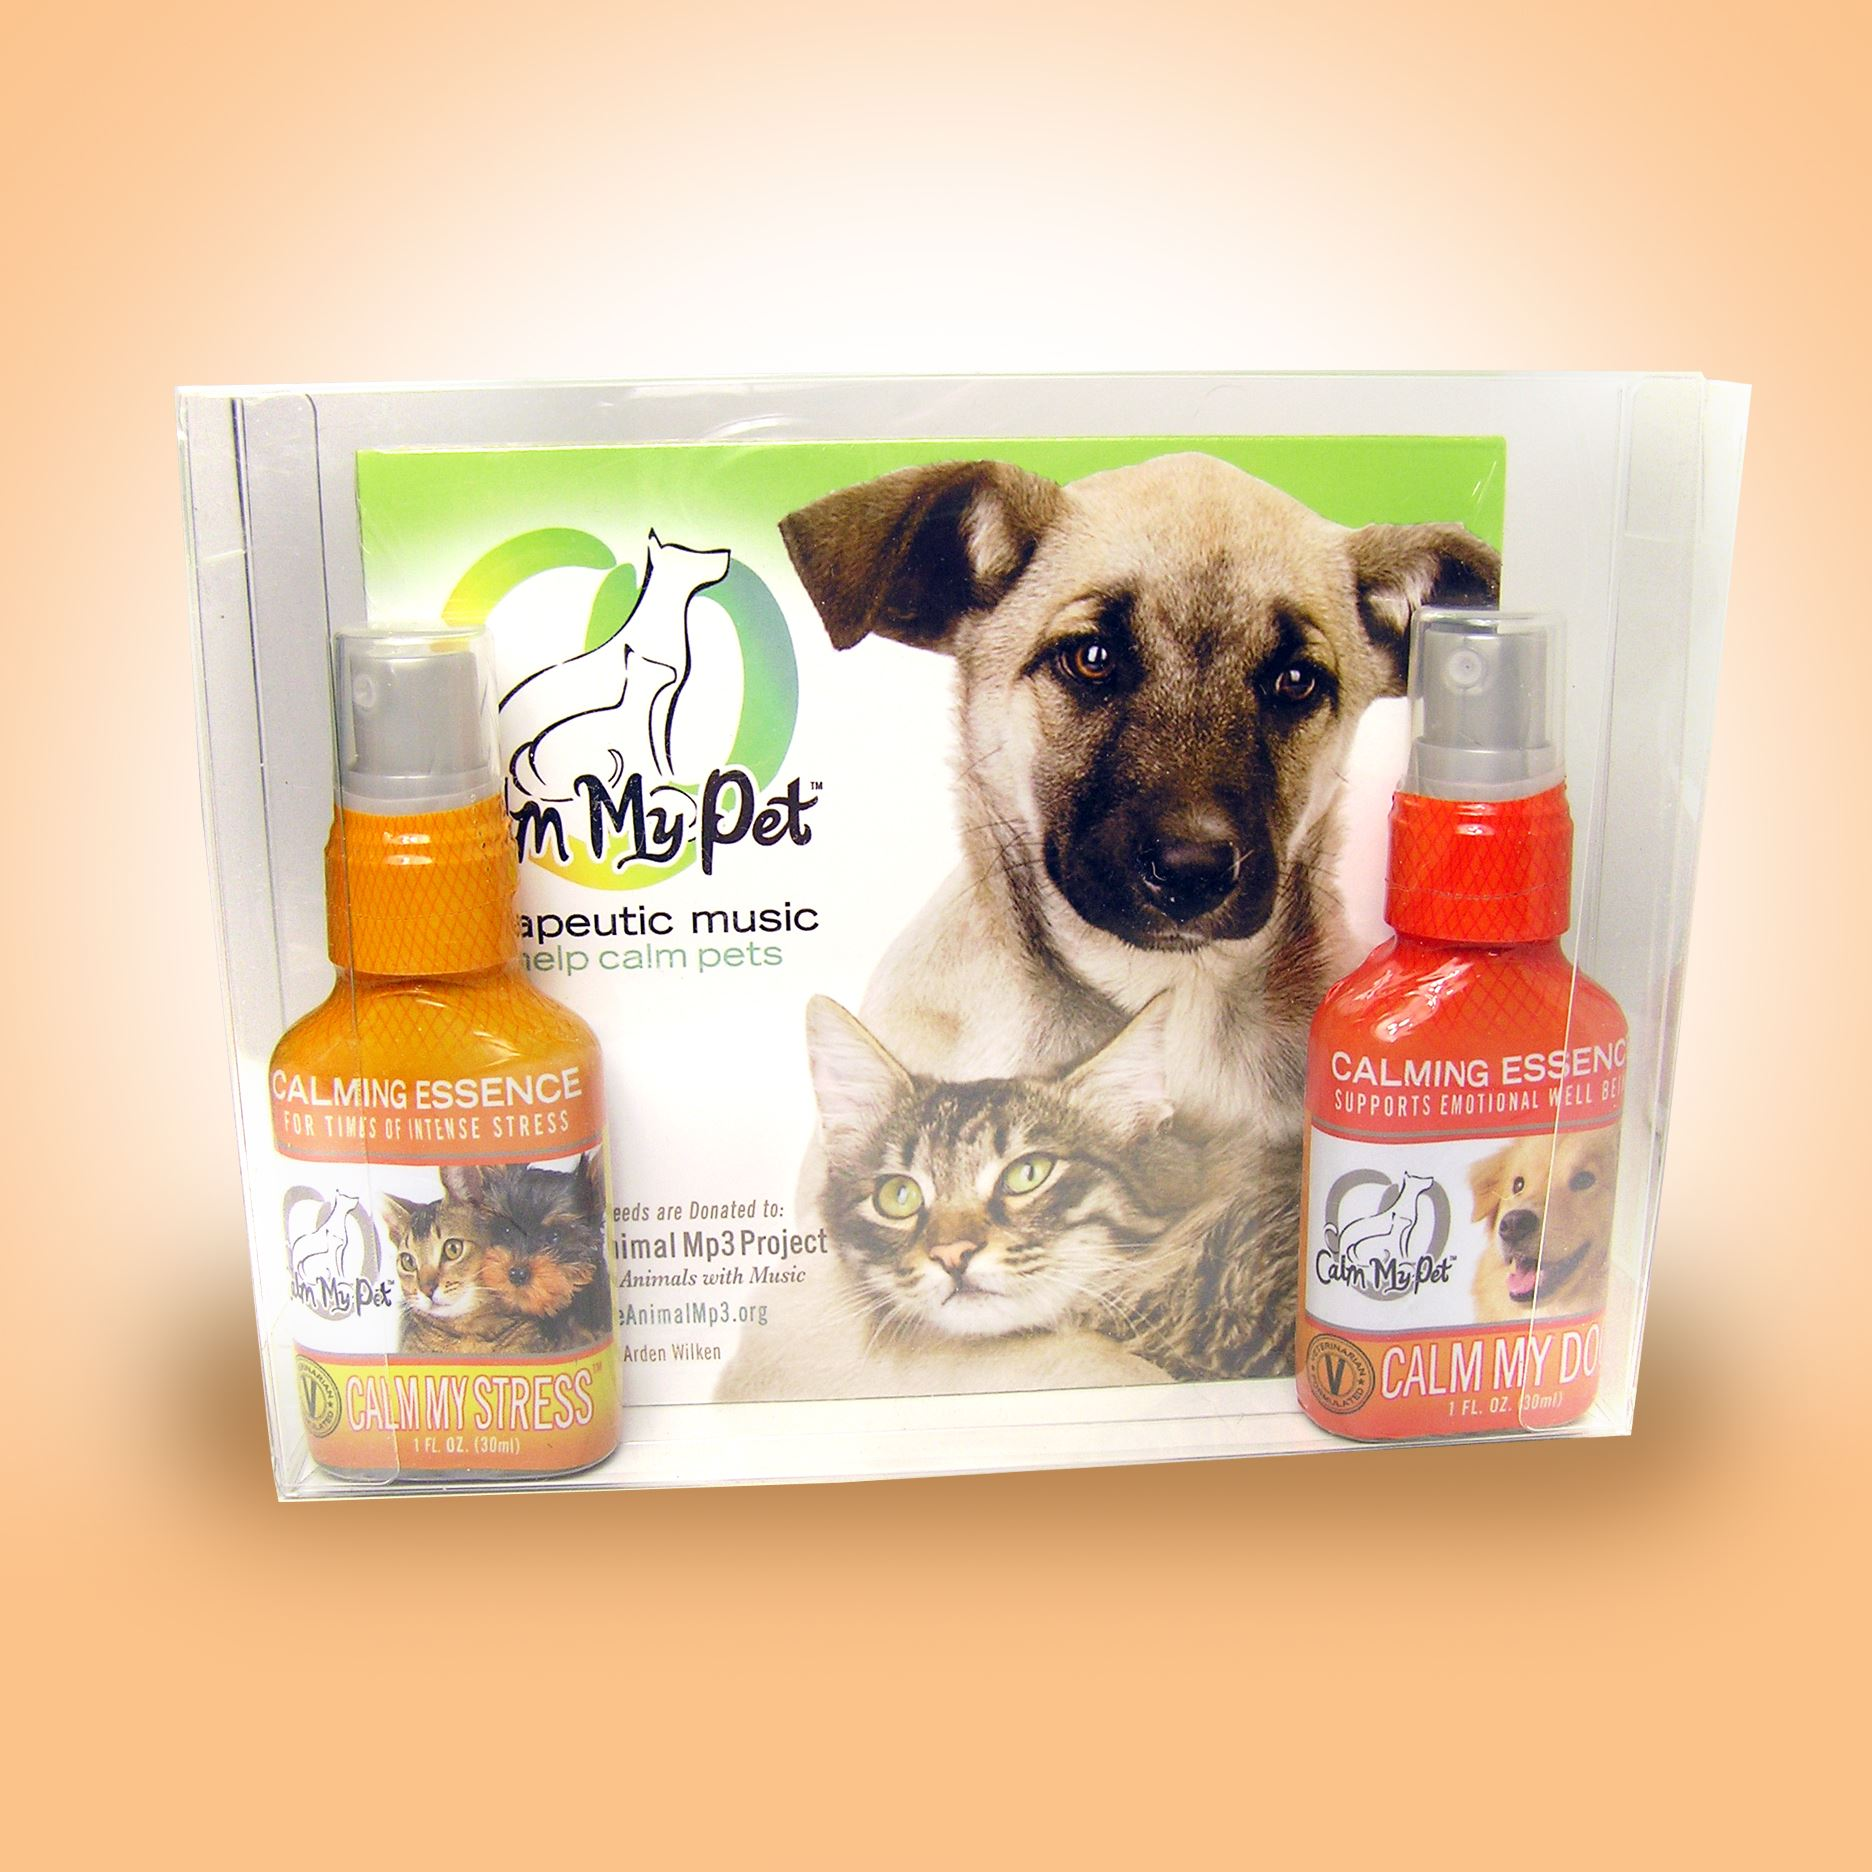 Best Product For Calming A Dog